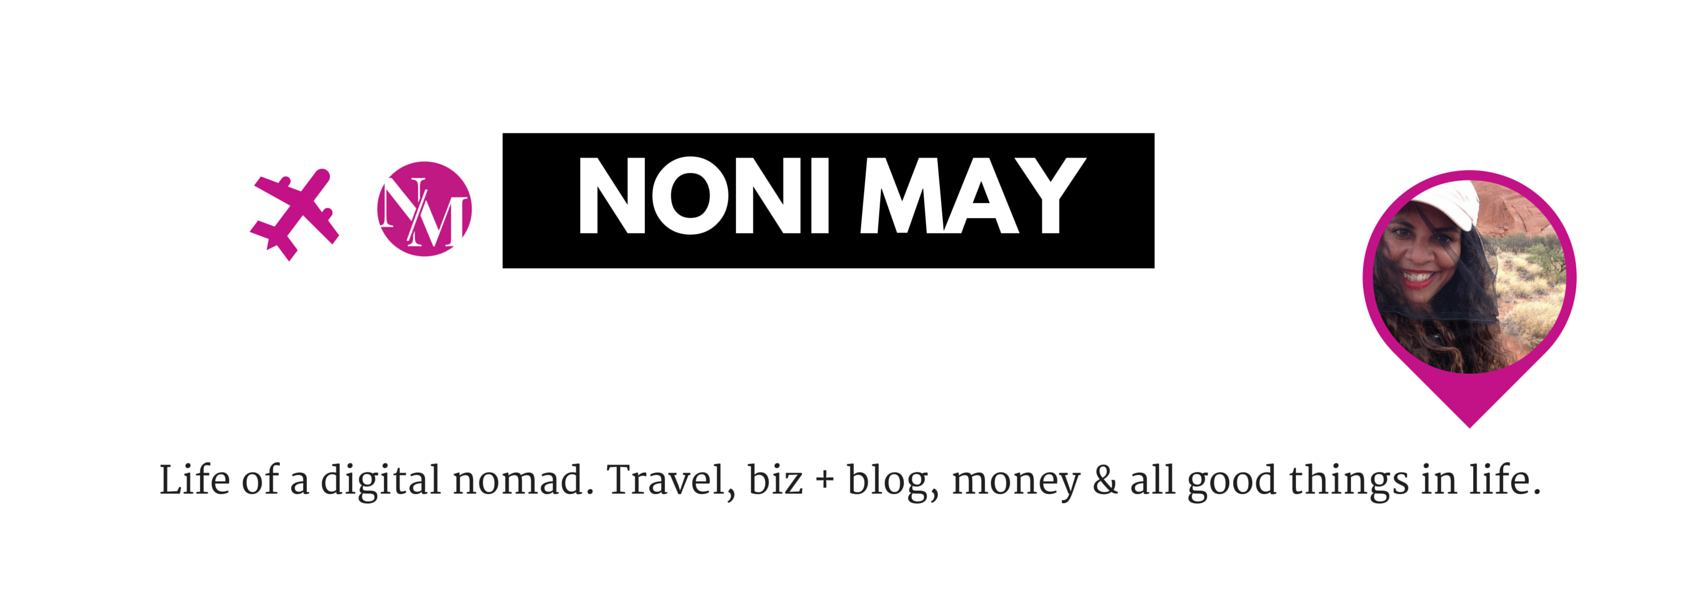 Header N-M - Noni MayWanderlust and CompanyLife of a digital nomad. Travel, biz + blog, finance & all good things in life.